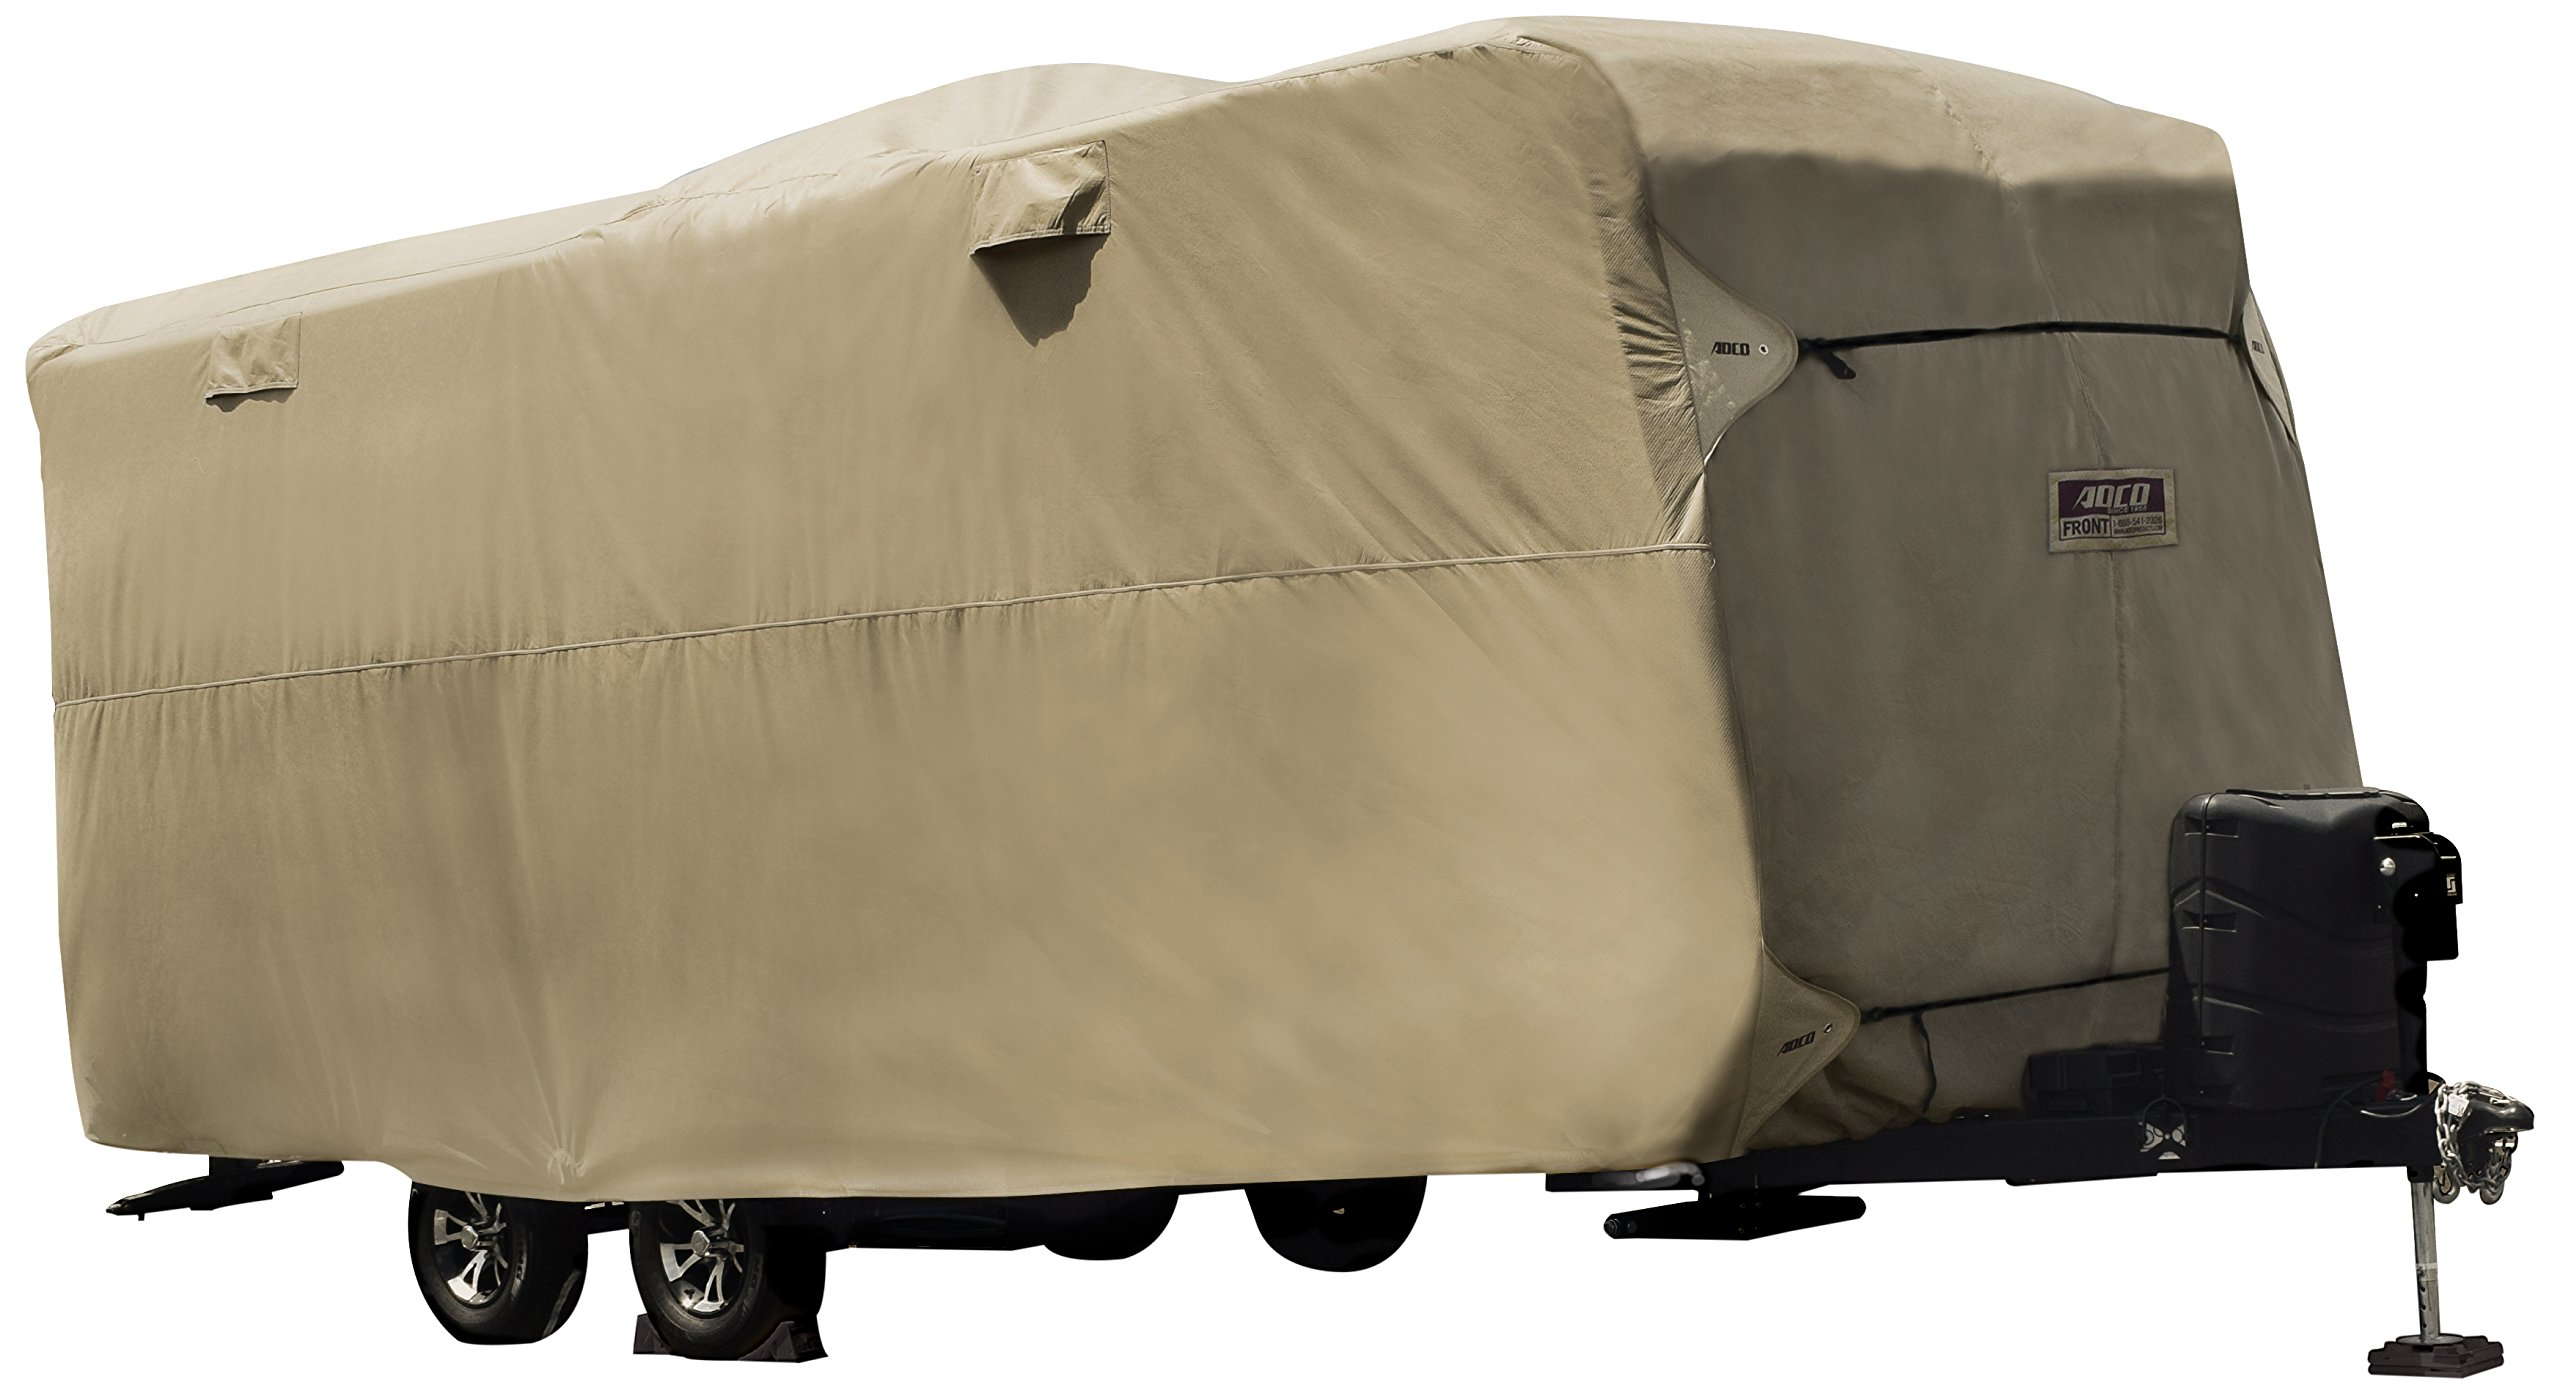 ADCO by Covercraft 74844 Storage Lot Cover for Travel Trailer RV, Fits 26'1''-28'6'', Tan